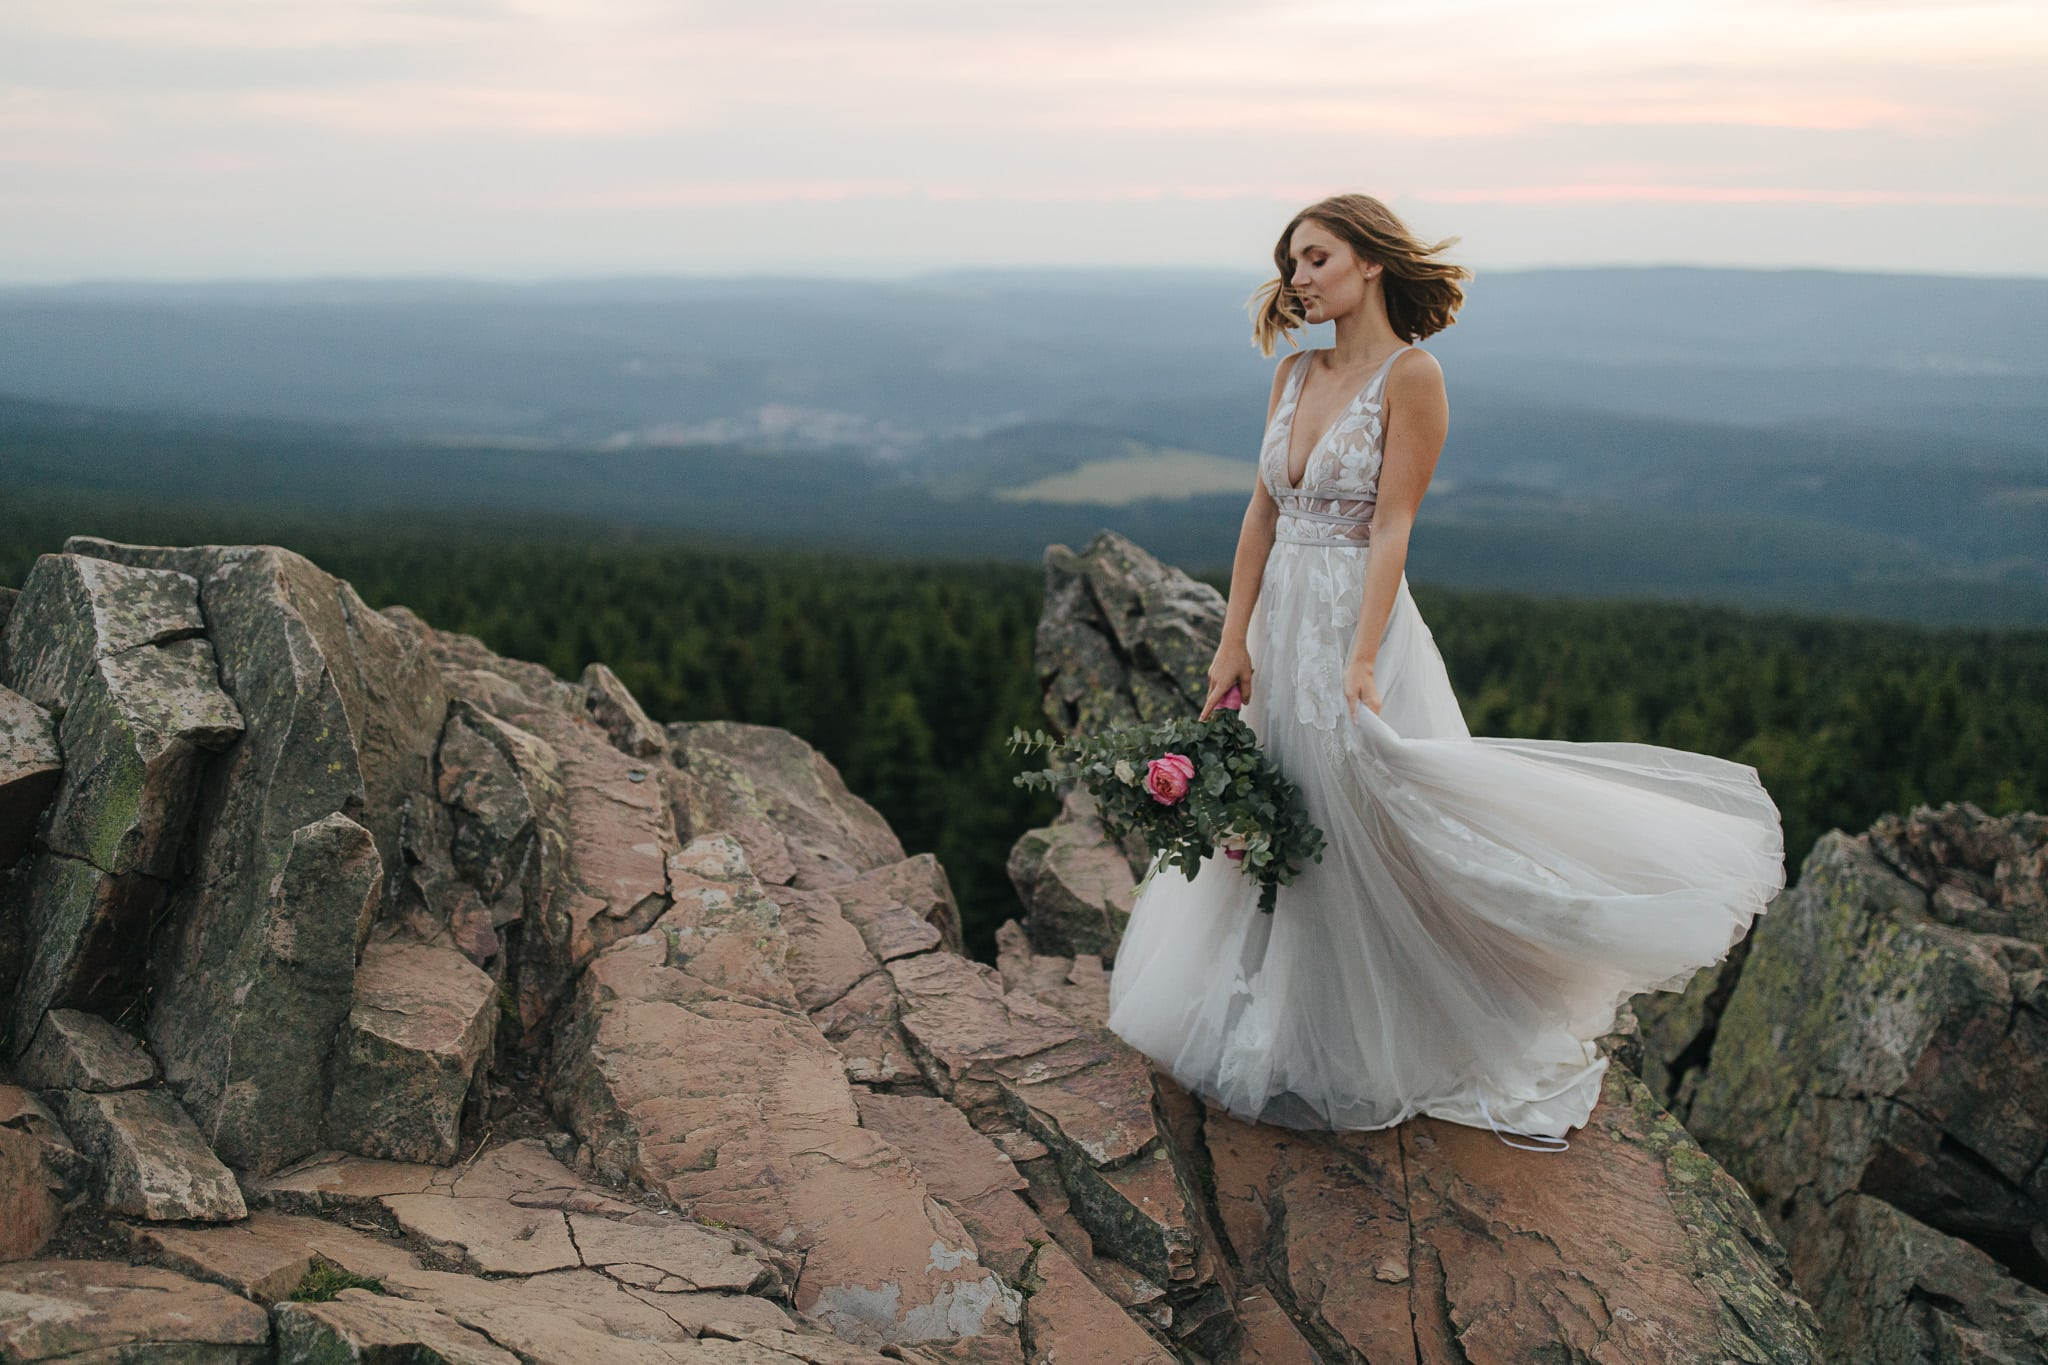 michael-palatini-mountain-bride-wedding